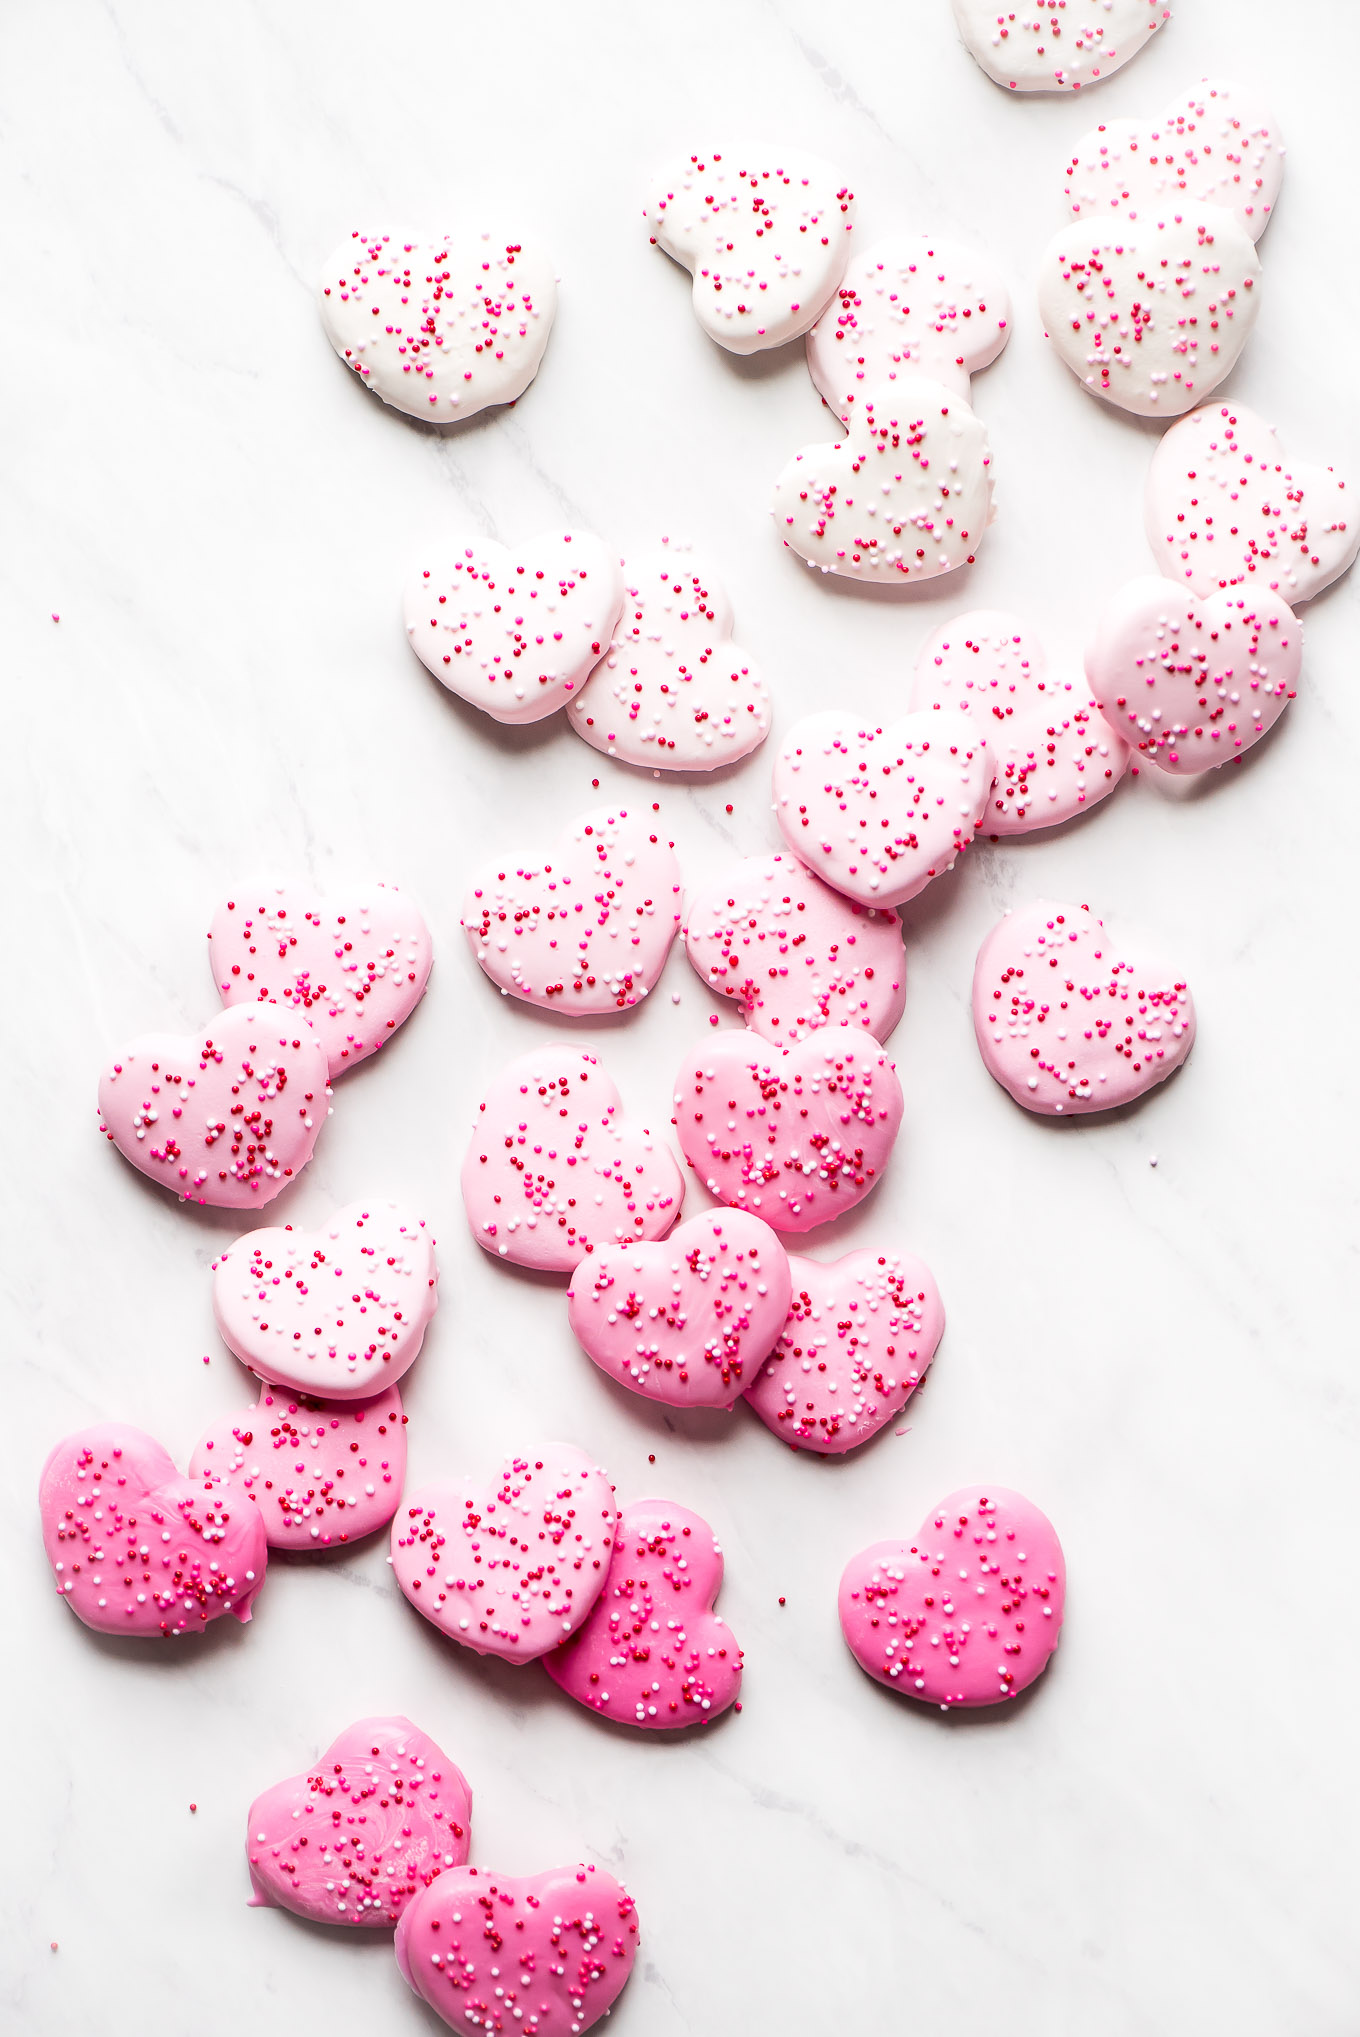 Heart Circus Cookies spread out over the table in a gradient from dark pink to white.